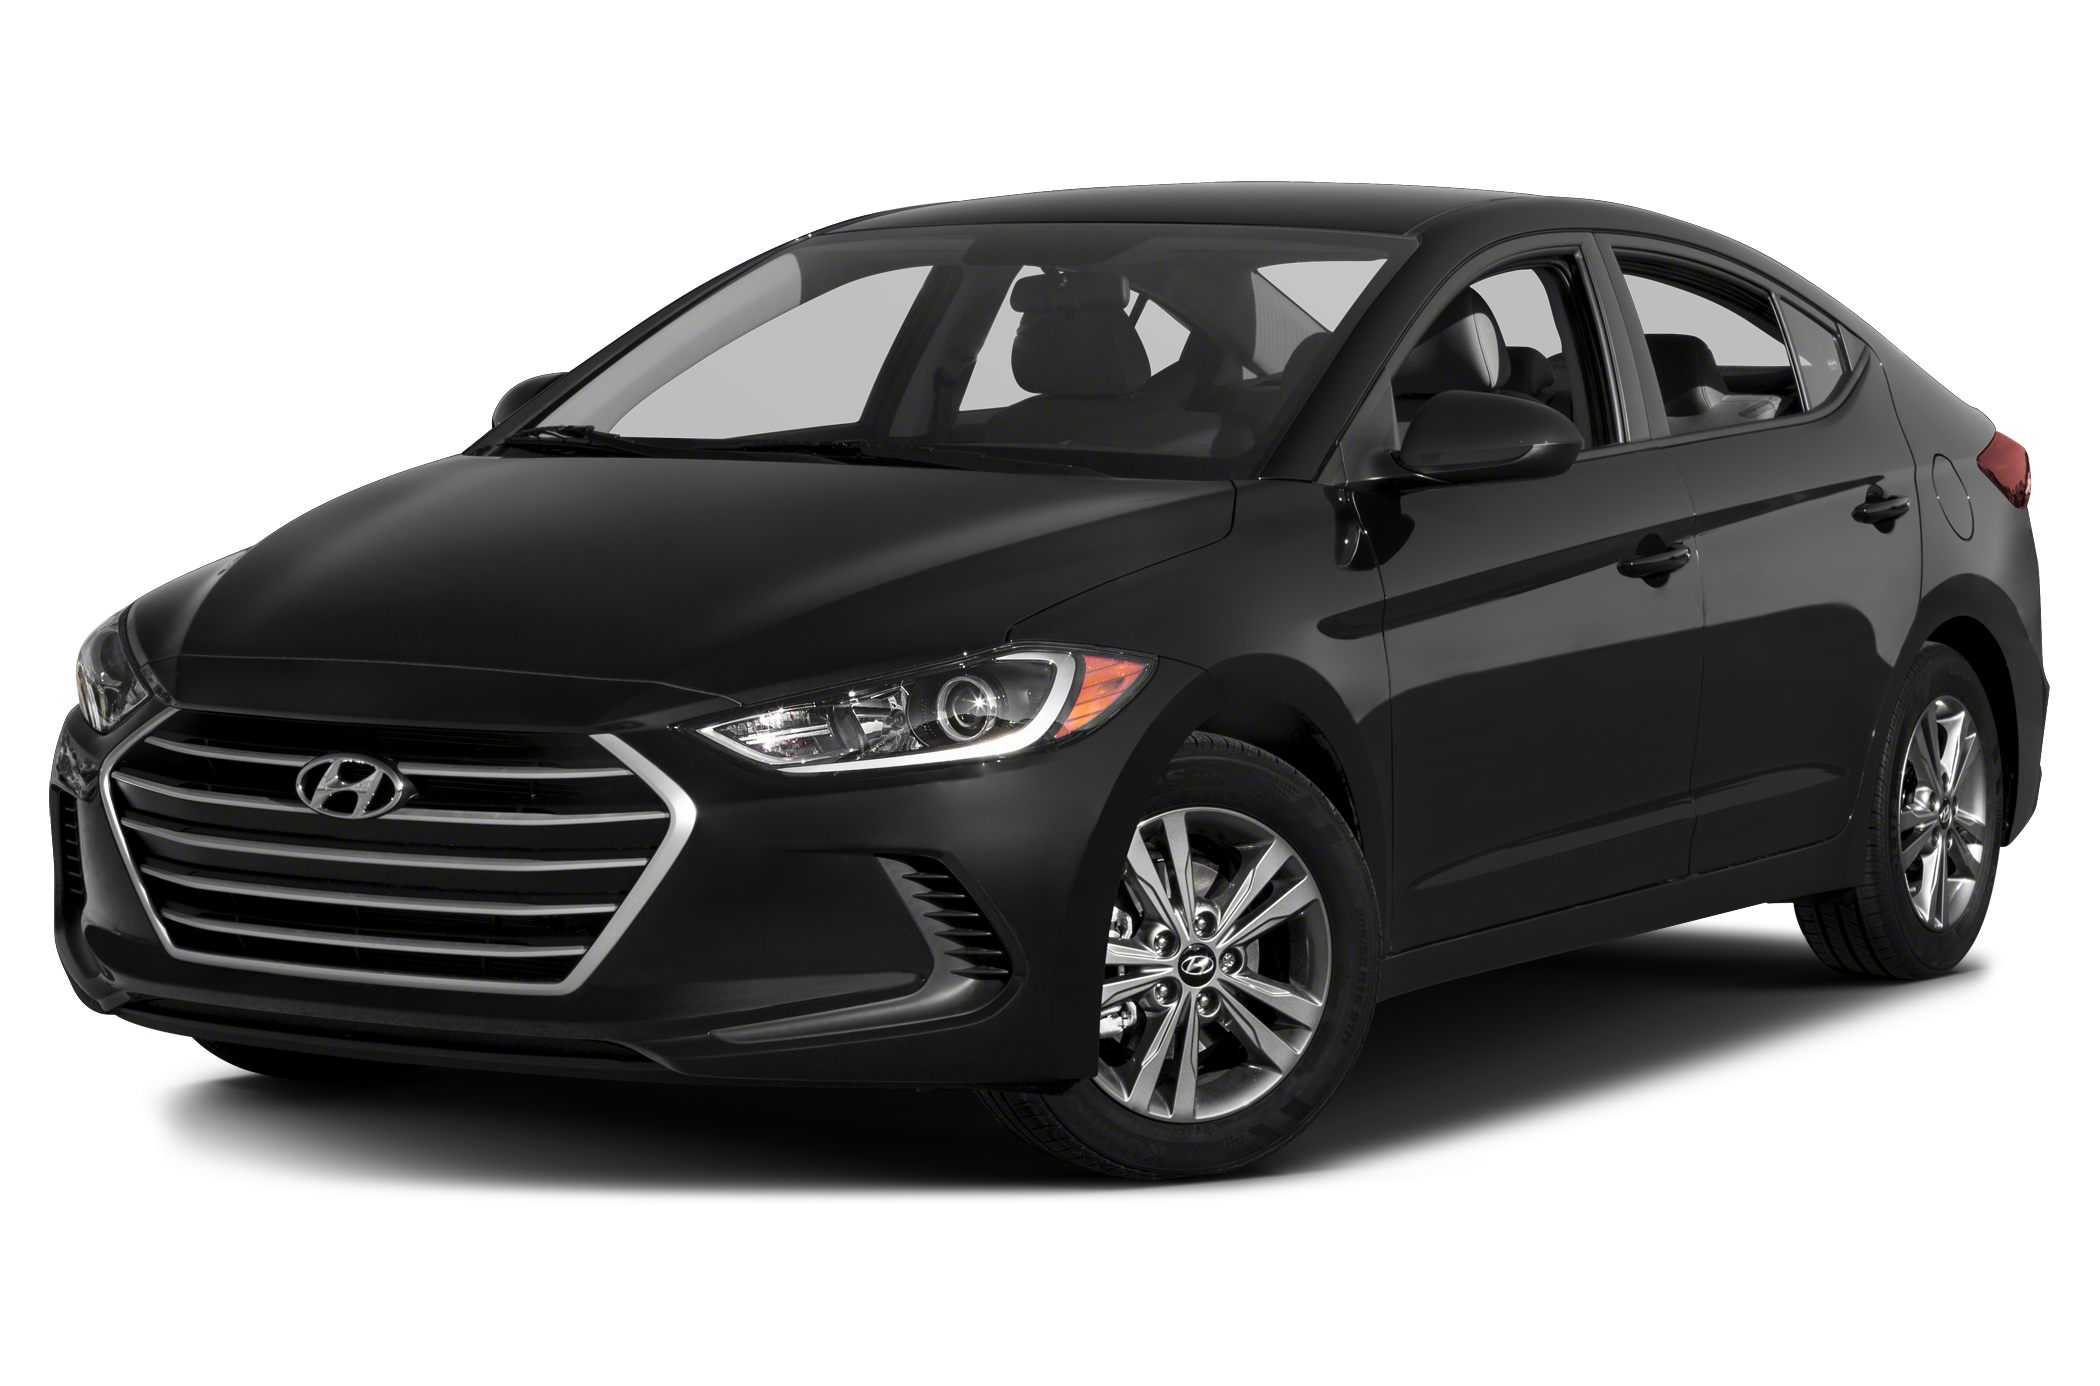 2017 Hyundai Elantra SE 6spd manual Join us at First Hyundai This terrific-looking 2017 Hyundai